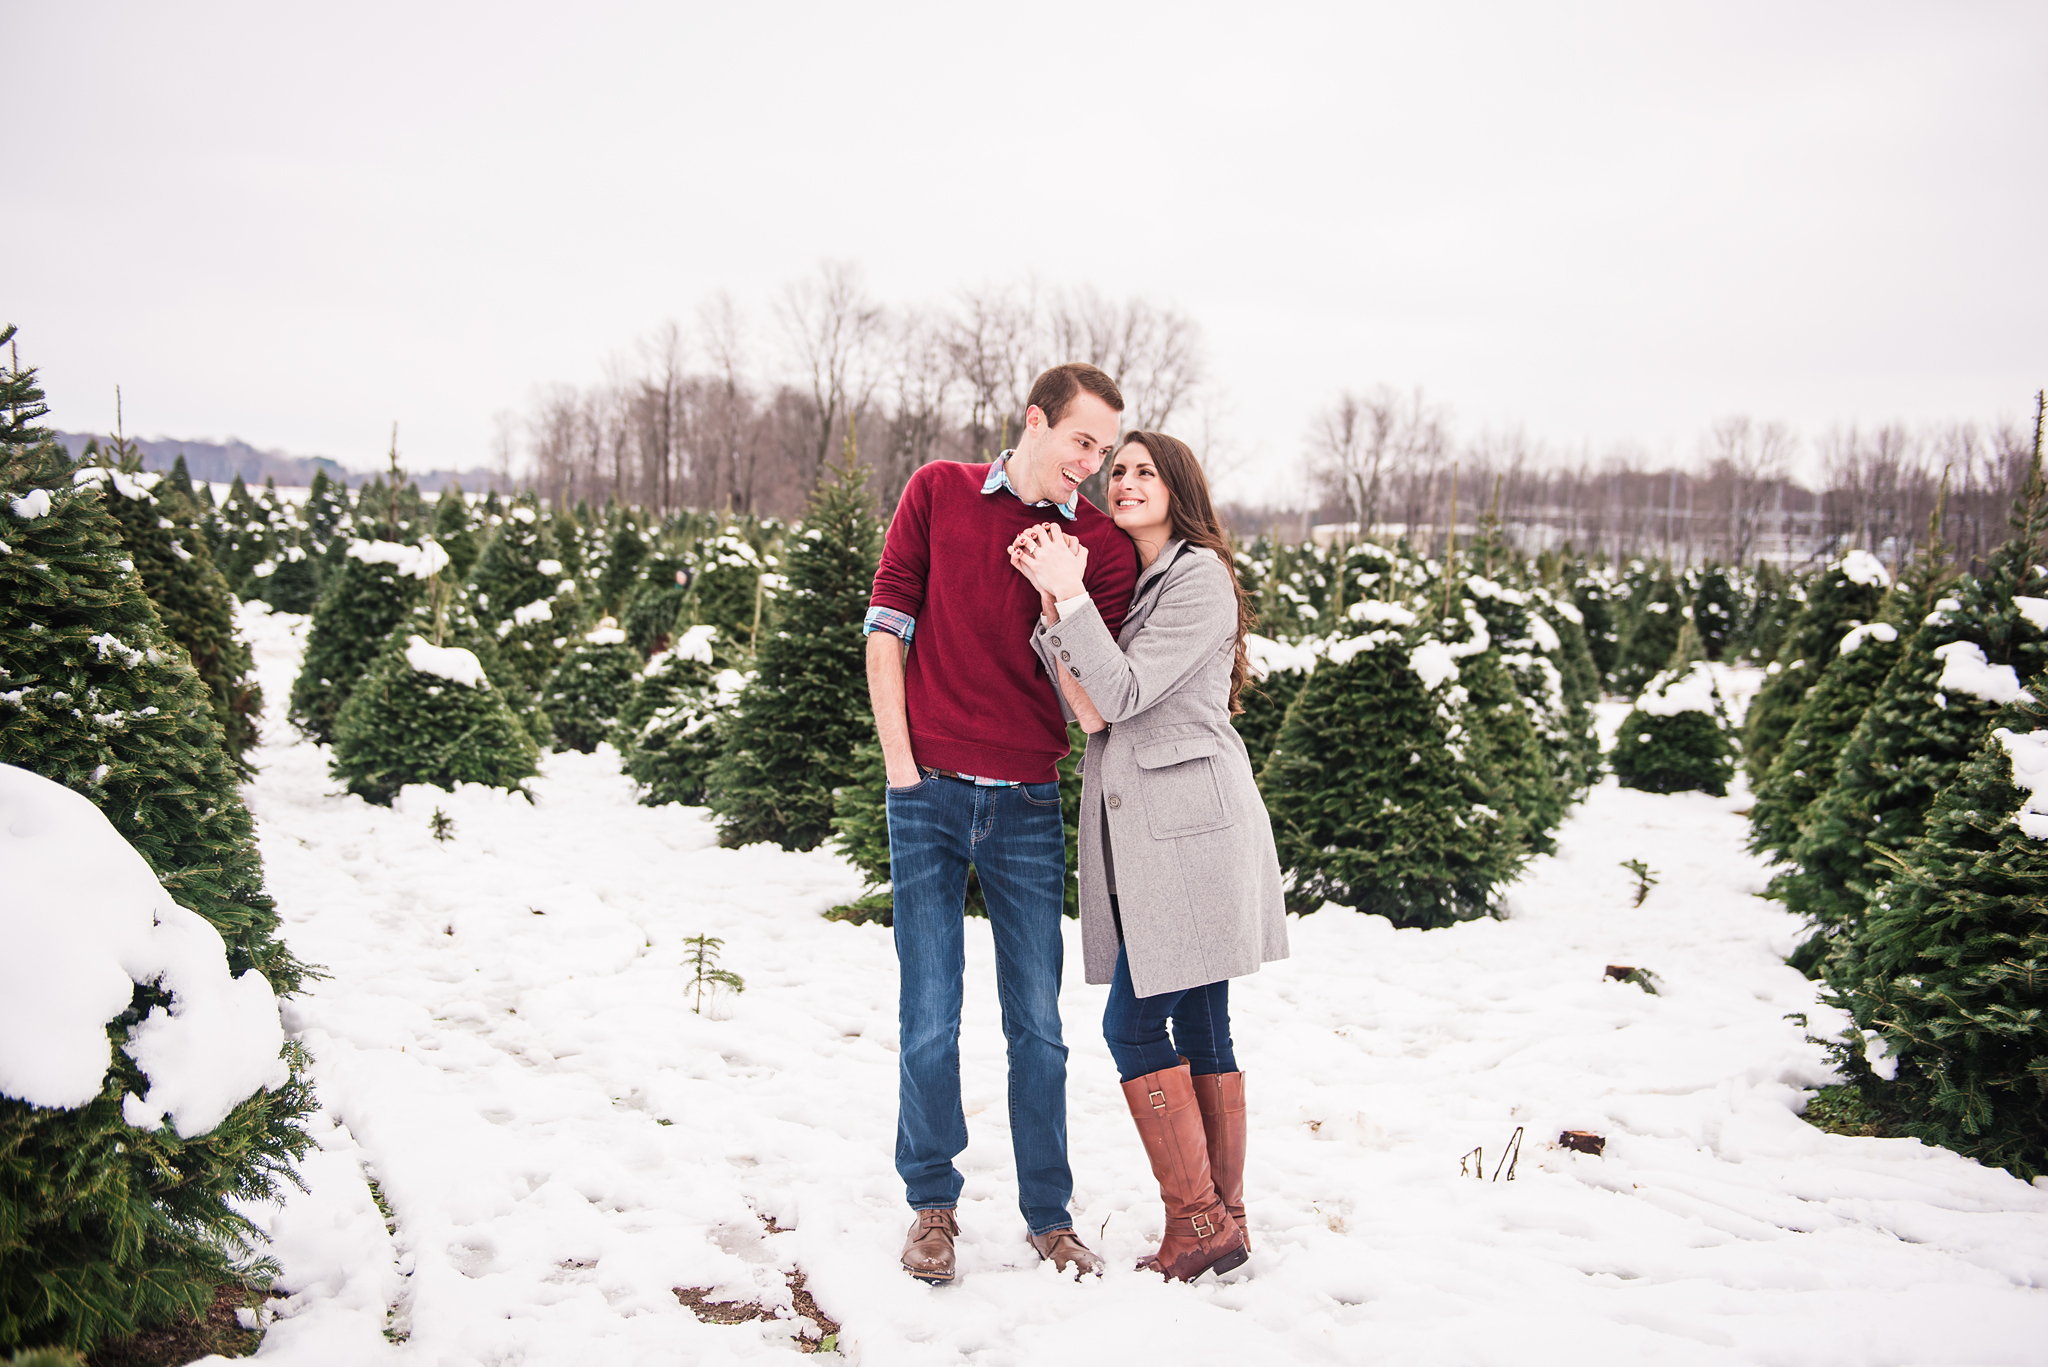 Woody_Acres_Rochester_Engagement_Session_JILL_STUDIO_Rochester_NY_Photographer_152750.jpg